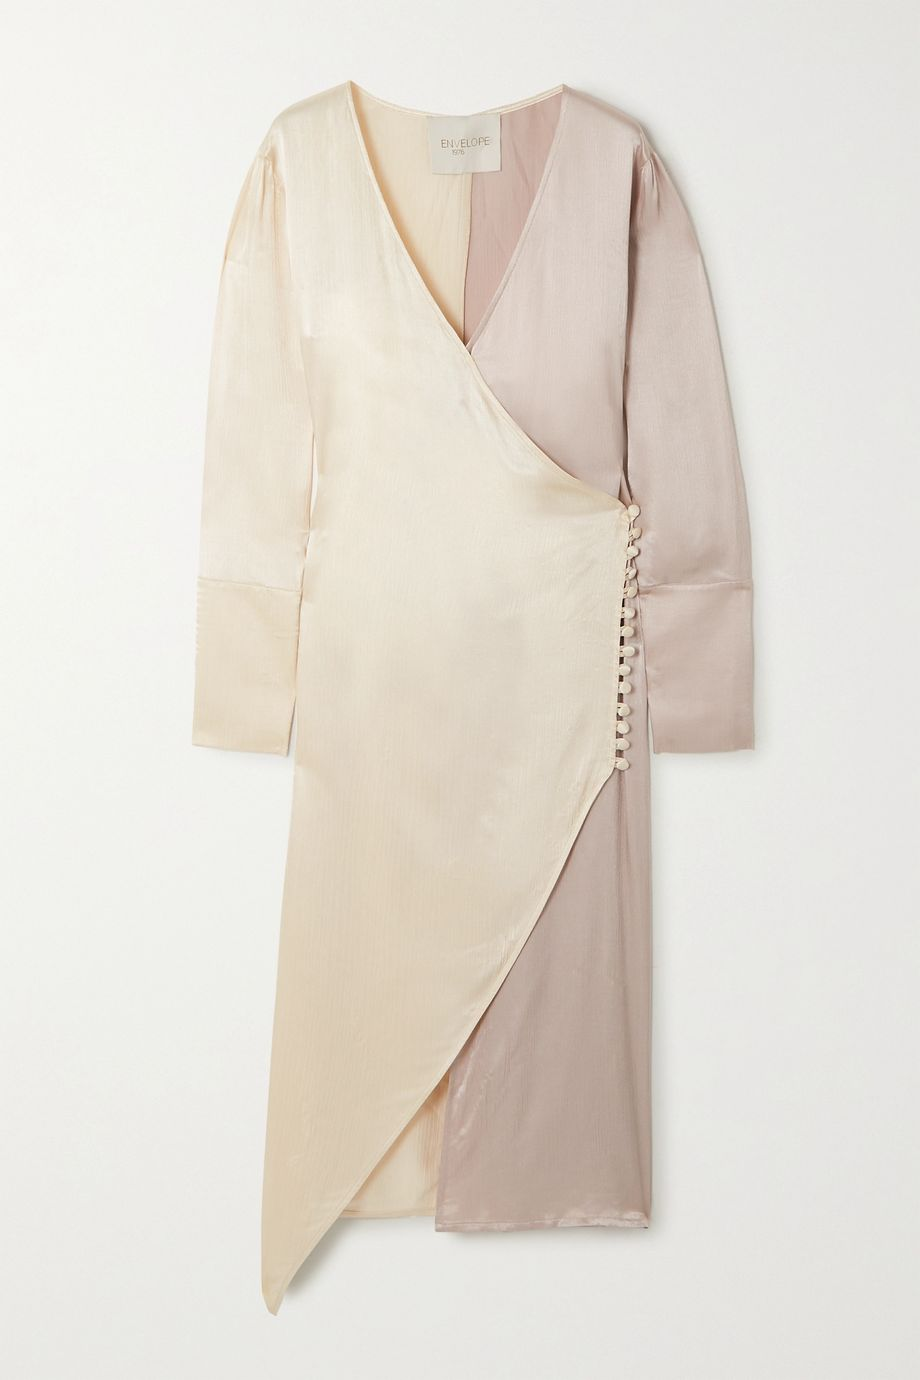 Envelope1976 + NET SUSTAIN asymmetric two-tone textured-satin wrap dress